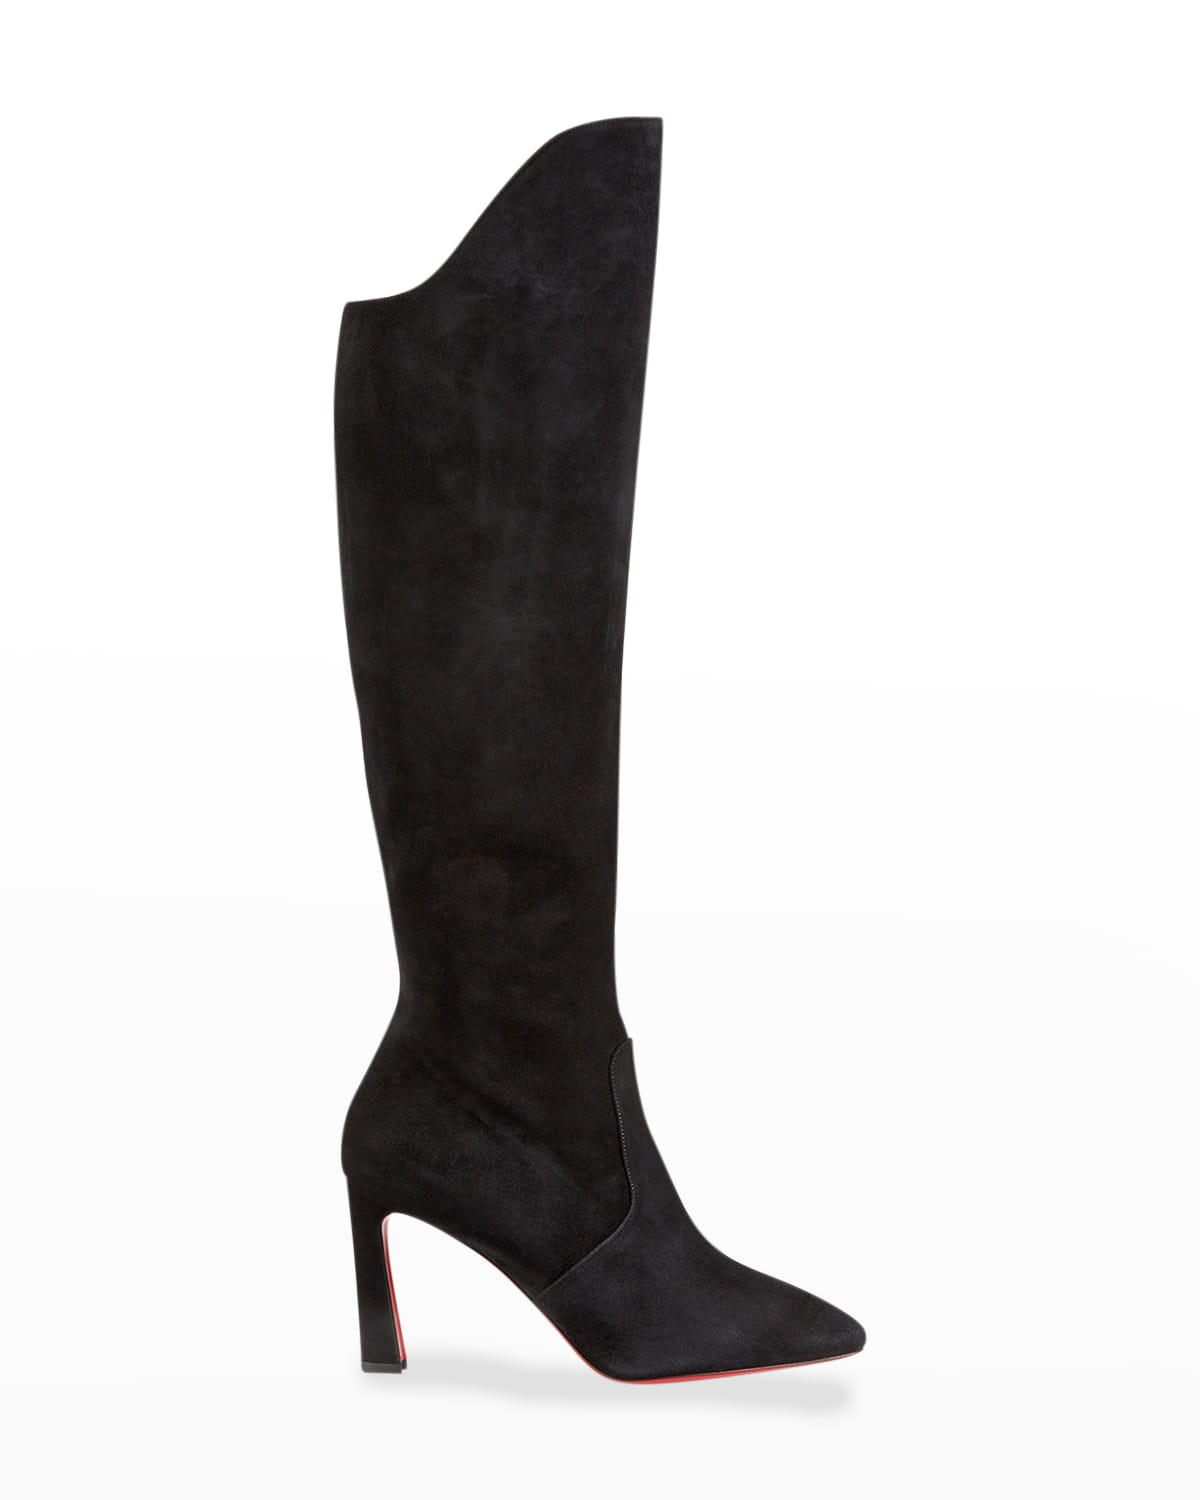 Eleonor Tall Suede Red Sole Boots